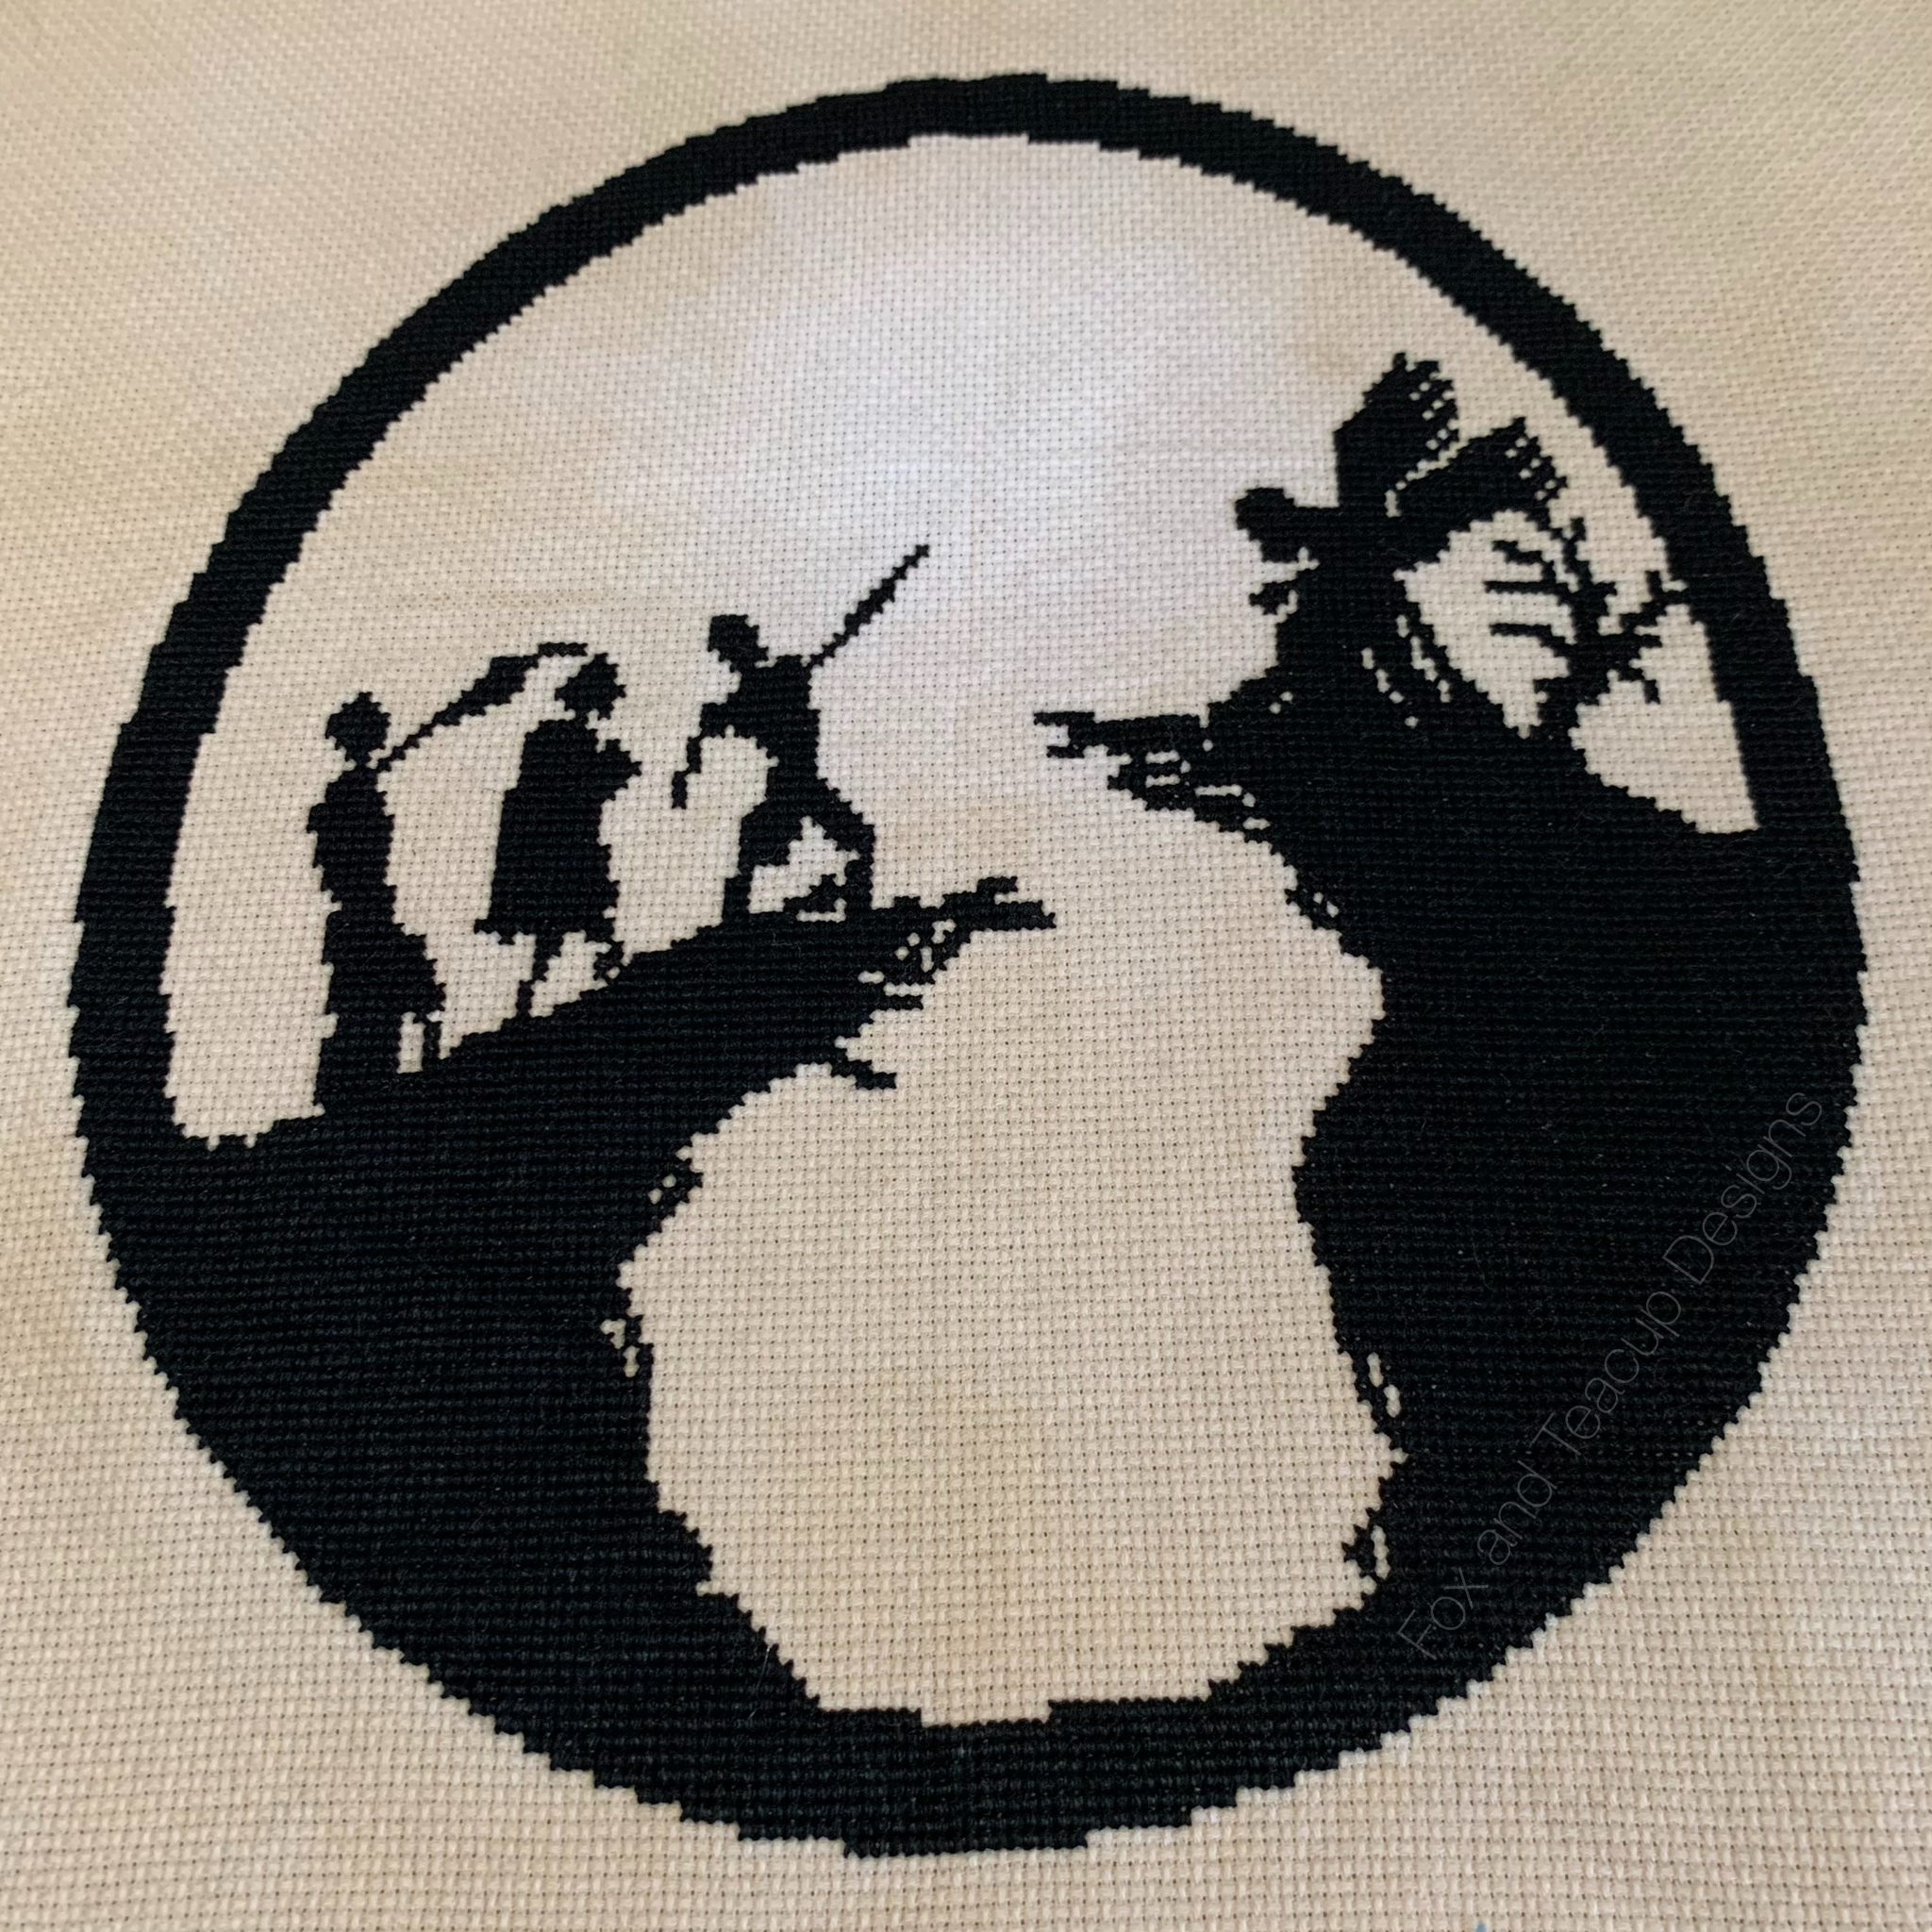 Three Brothers digital cross stitch pattern